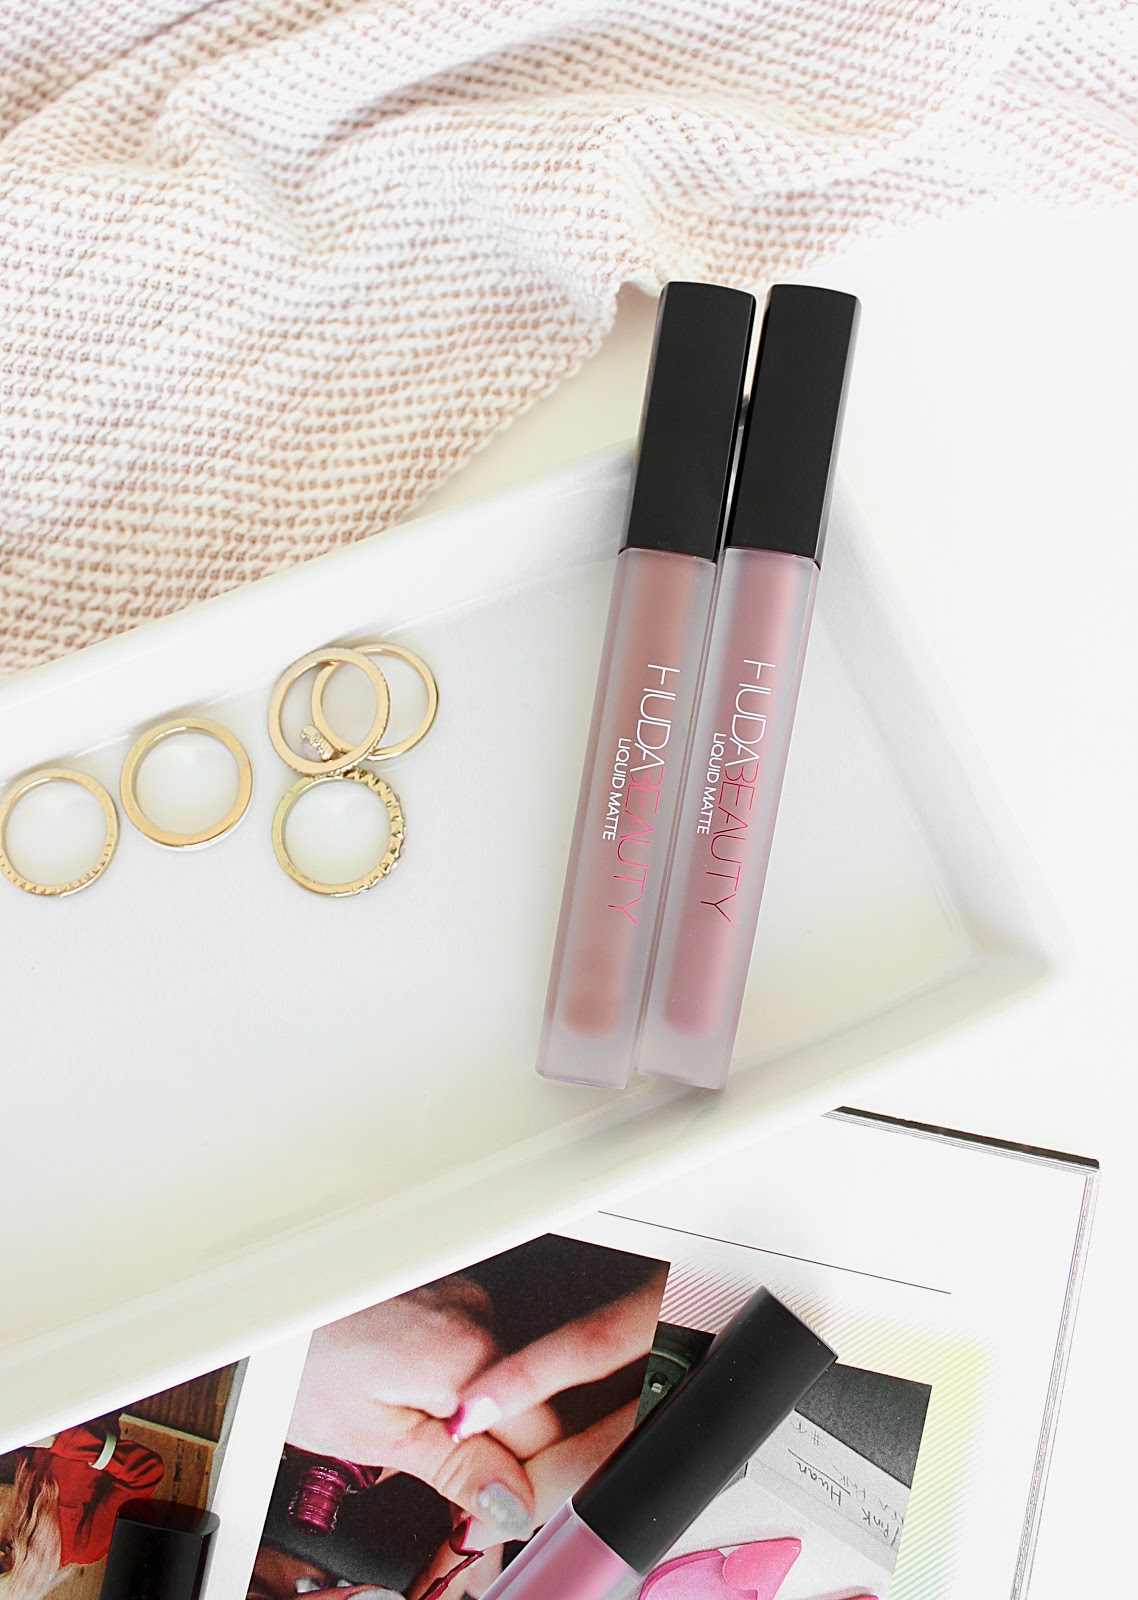 Huda Beauty Liquid Matte Lipstick Review - Flirt & Medusa